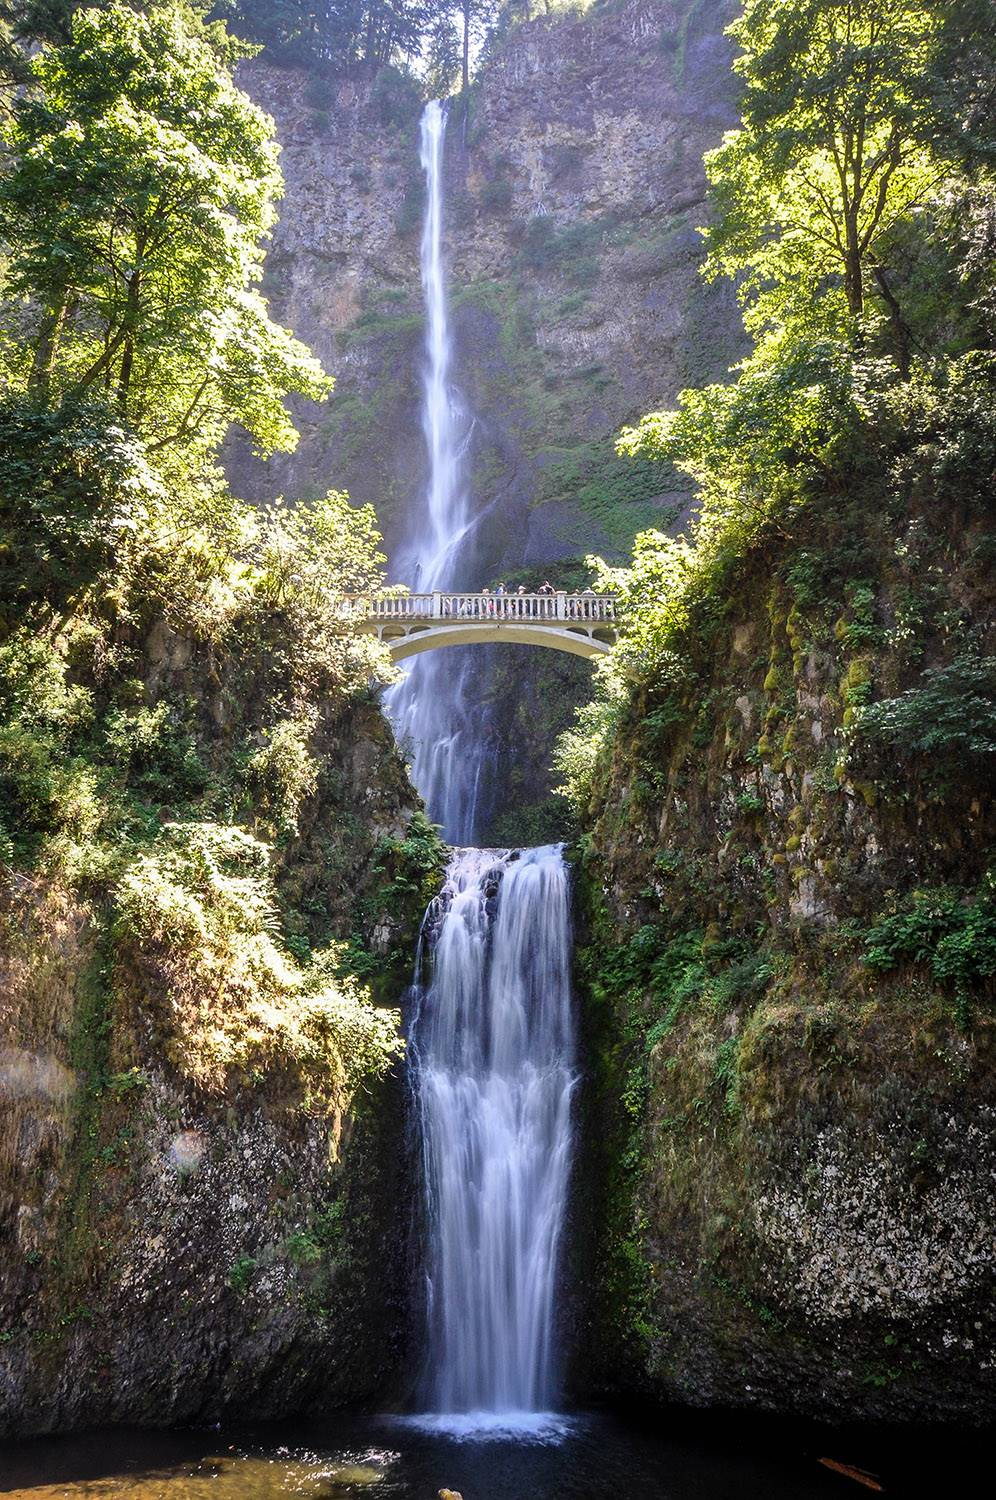 17 Weirdly Awesome Things to Do in Portland | Two Wandering